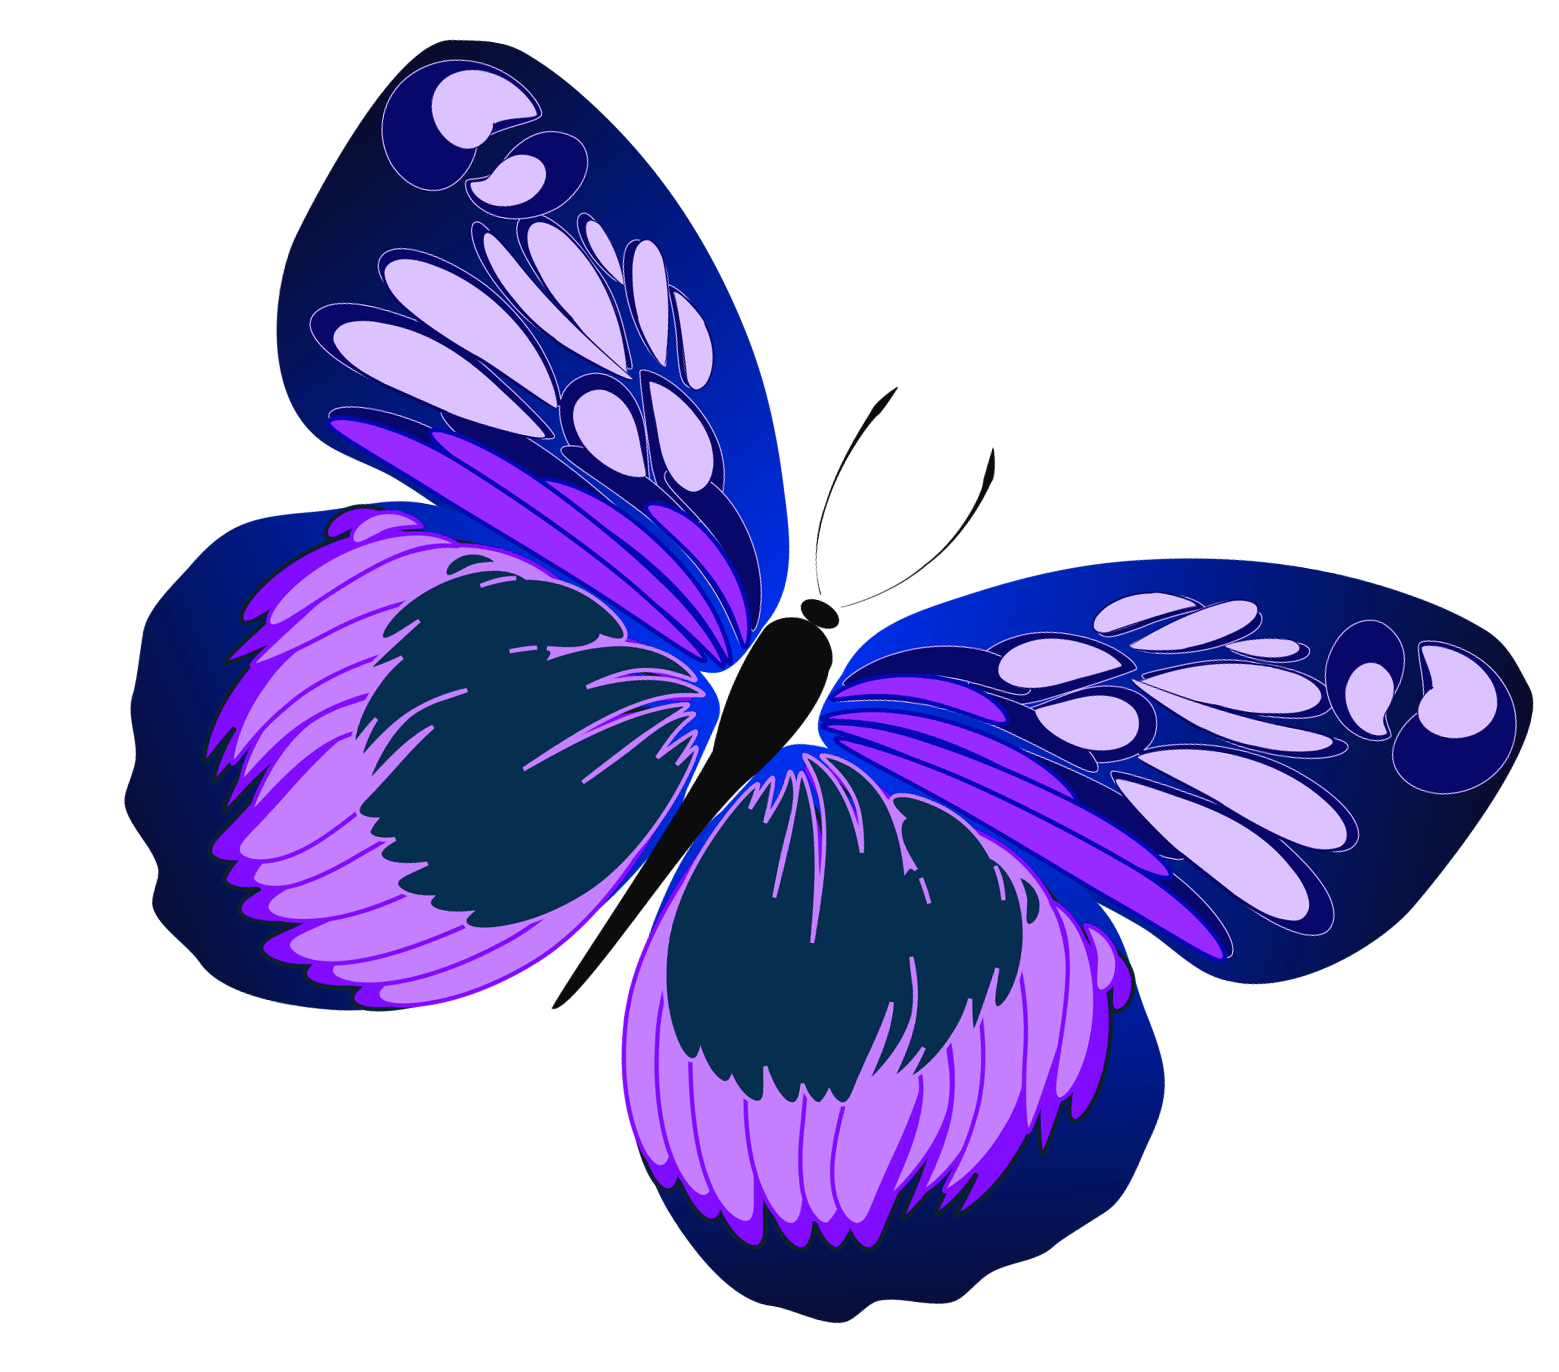 Butterfly on flower clipart picture library stock Violet Flower Clipart at GetDrawings.com | Free for personal use ... picture library stock